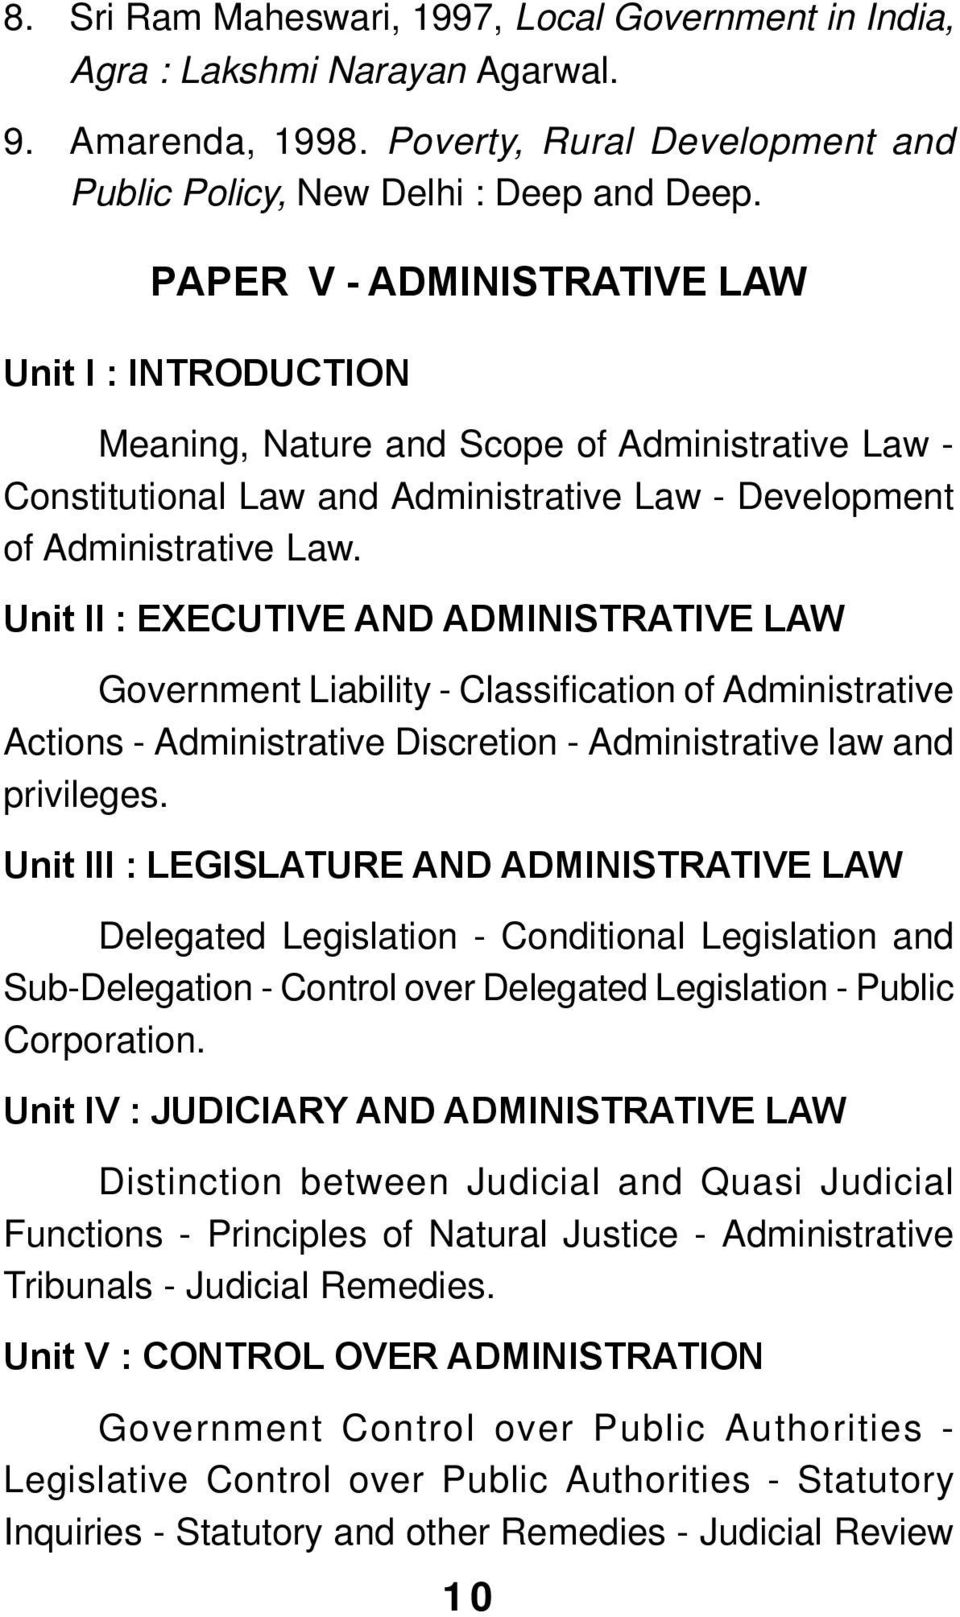 PAPER V - ADMINISTRATIVE LAW Meaning, Nature and Scope of Administrative Law - Constitutional Law and Administrative Law - Development of Administrative Law.